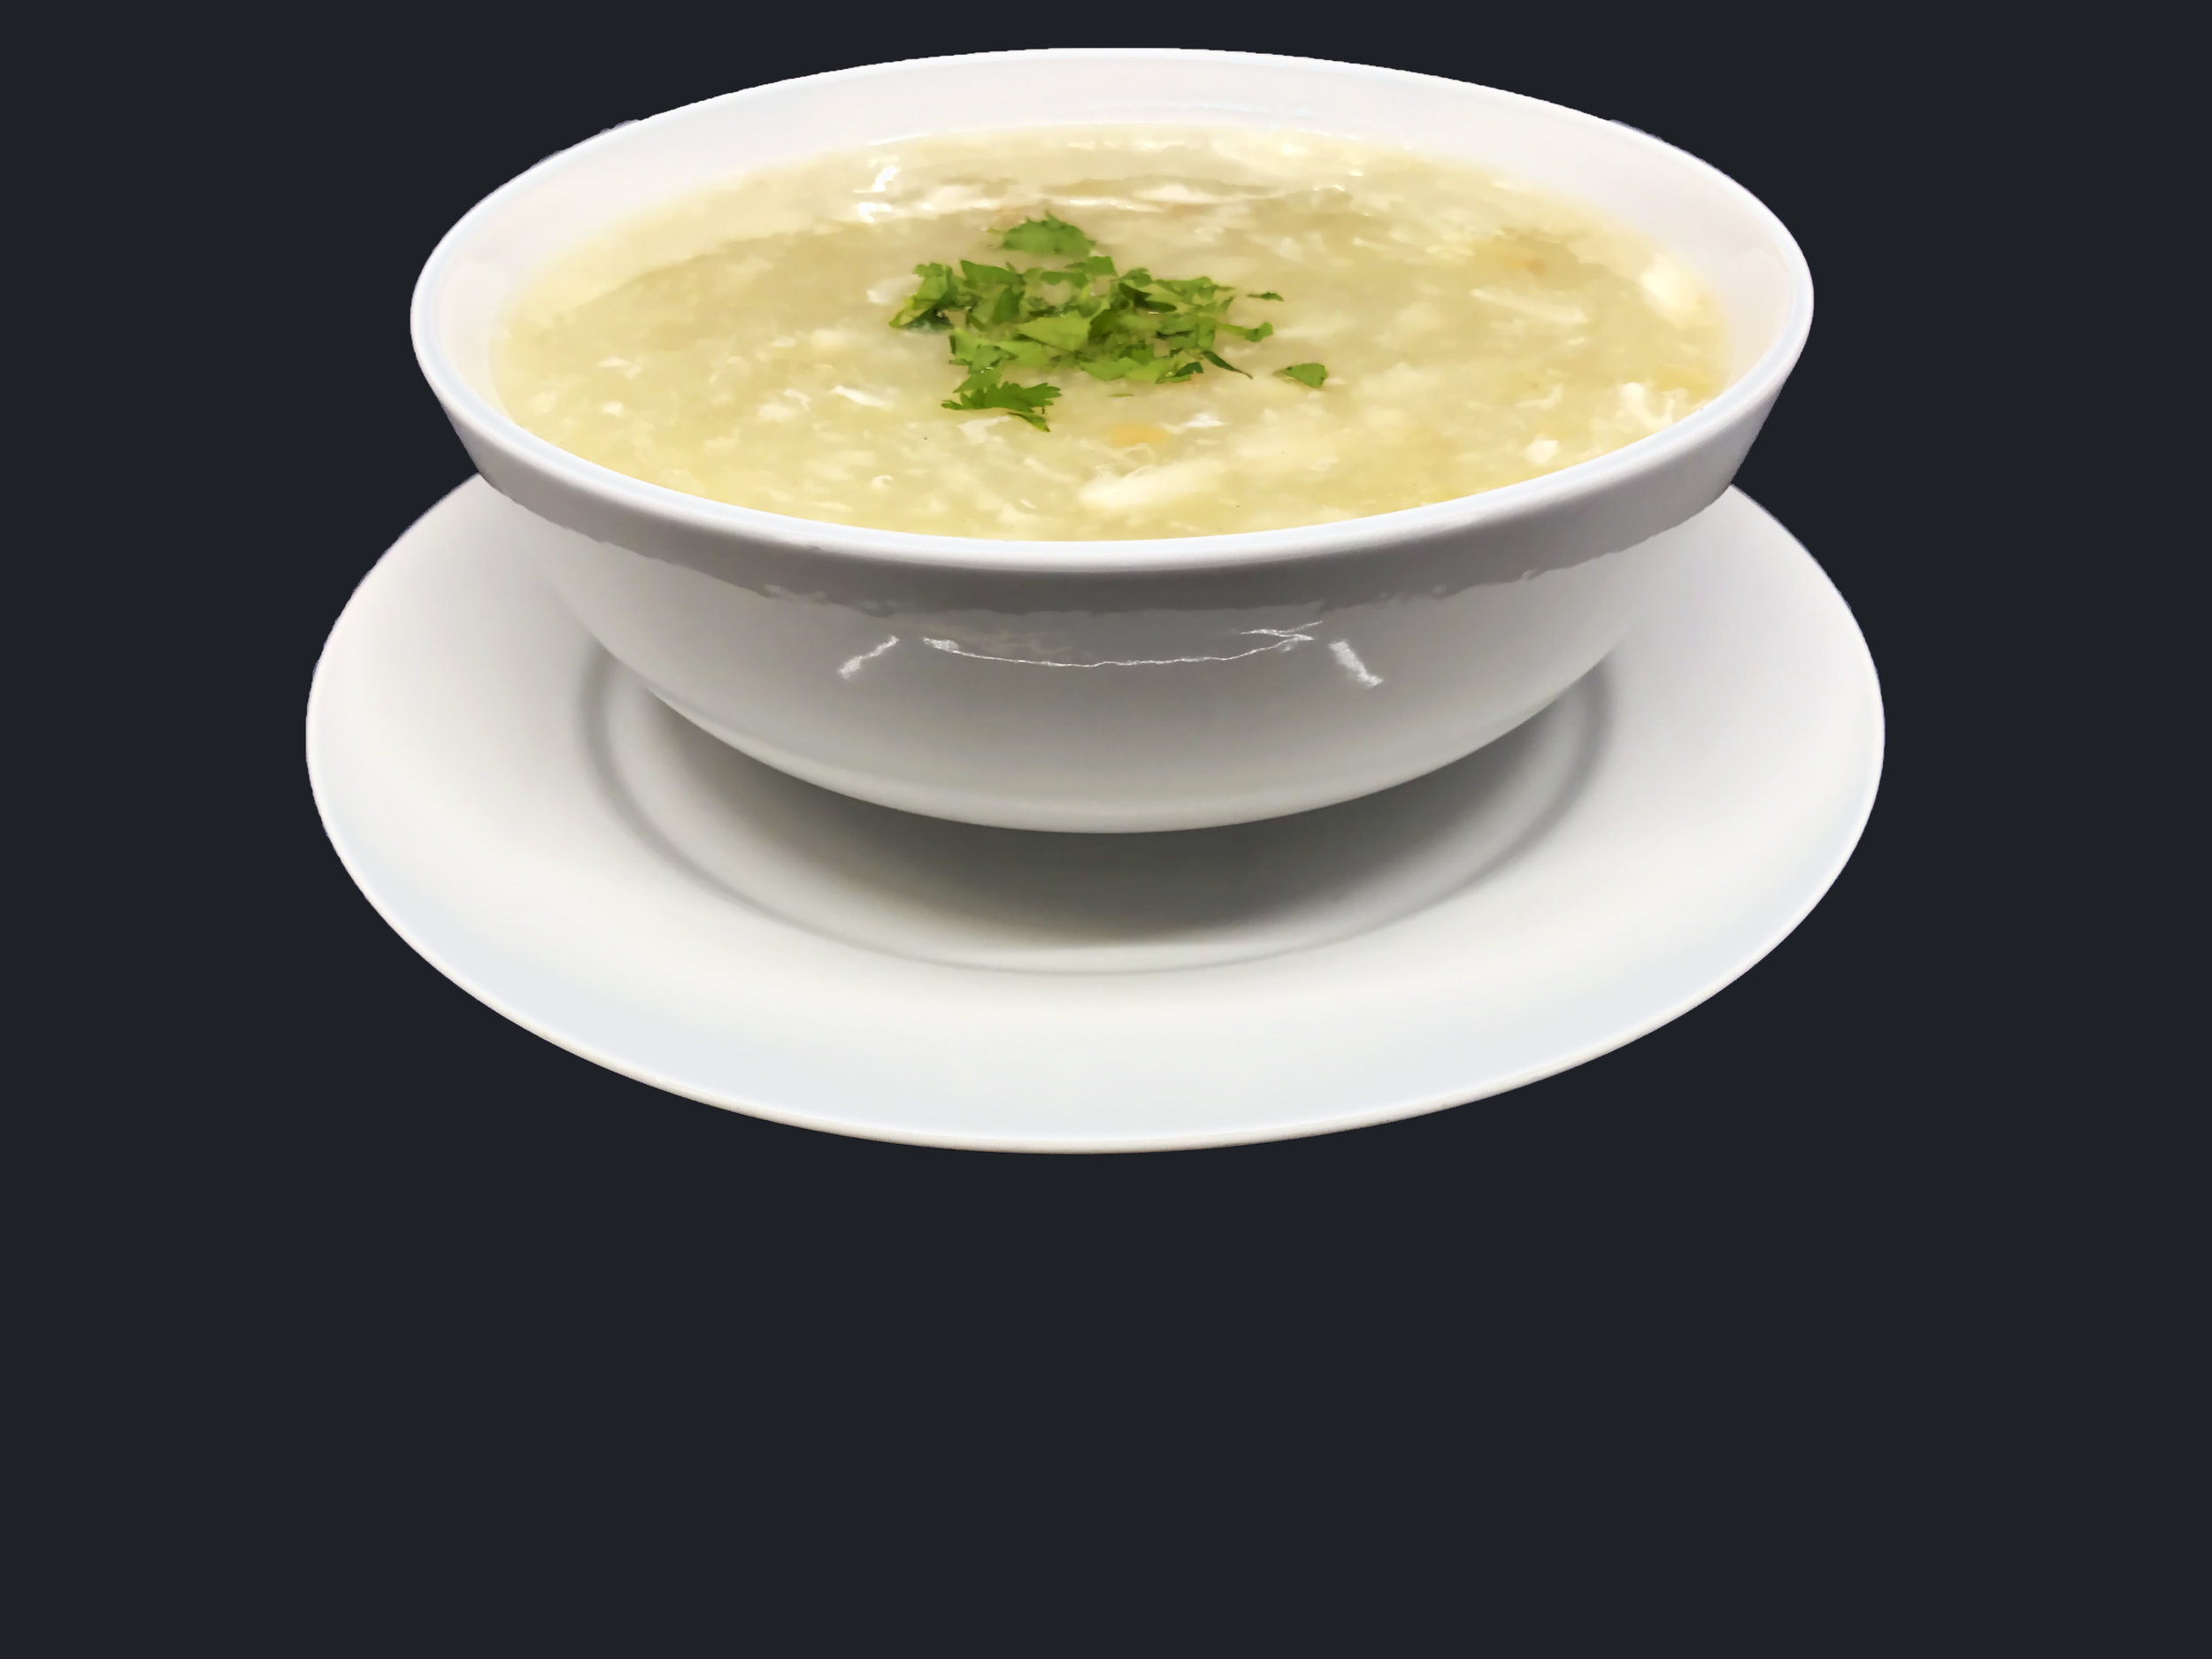 Crab Meat and Asparagus Soup